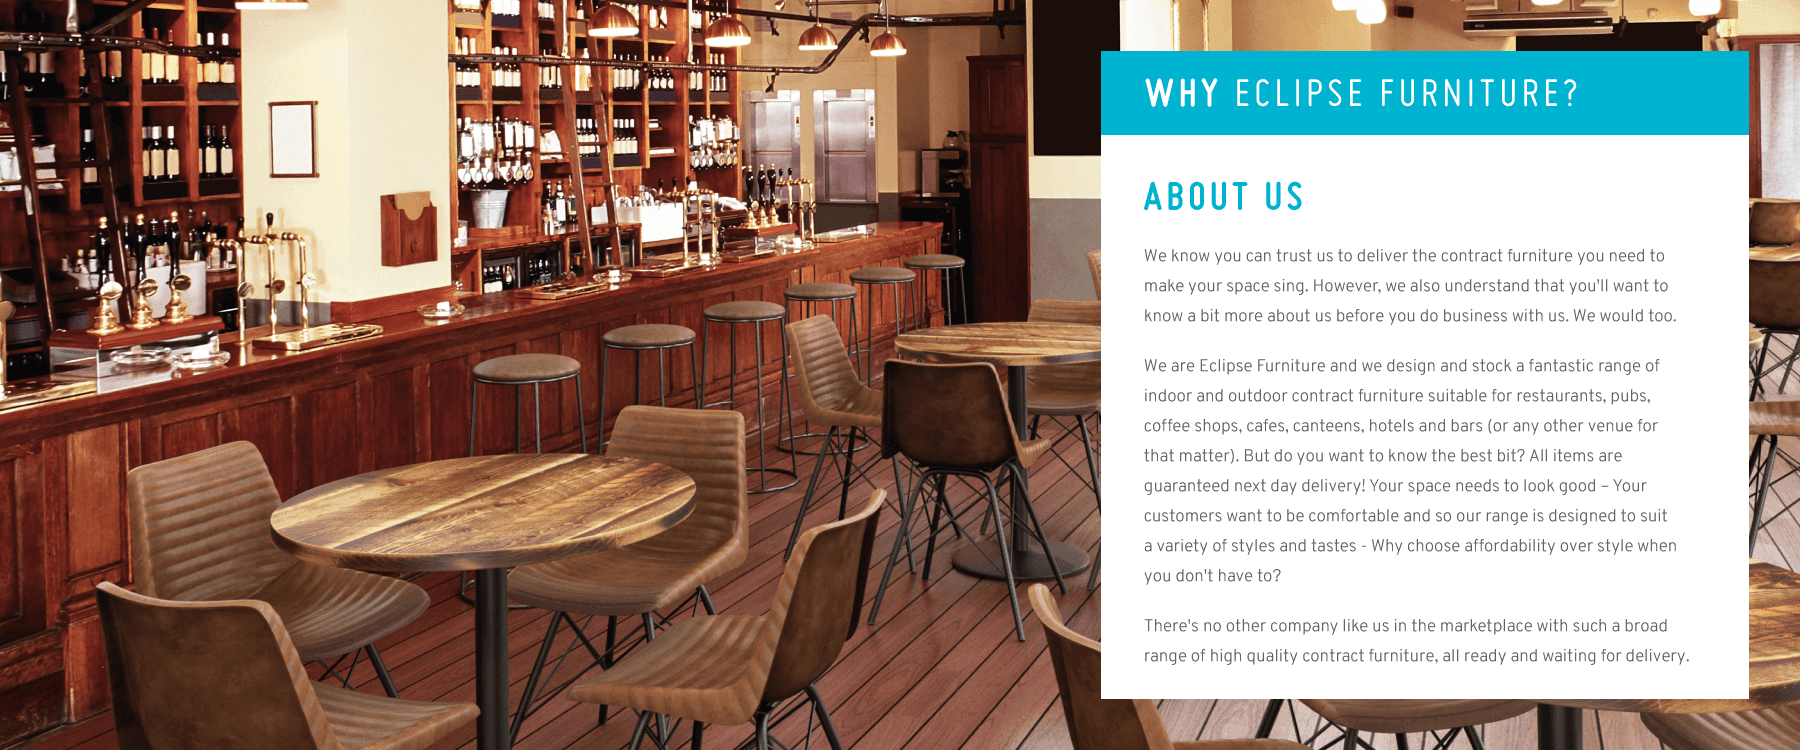 Eclipse Furniture Contract Furniture Suppliers For Pubs